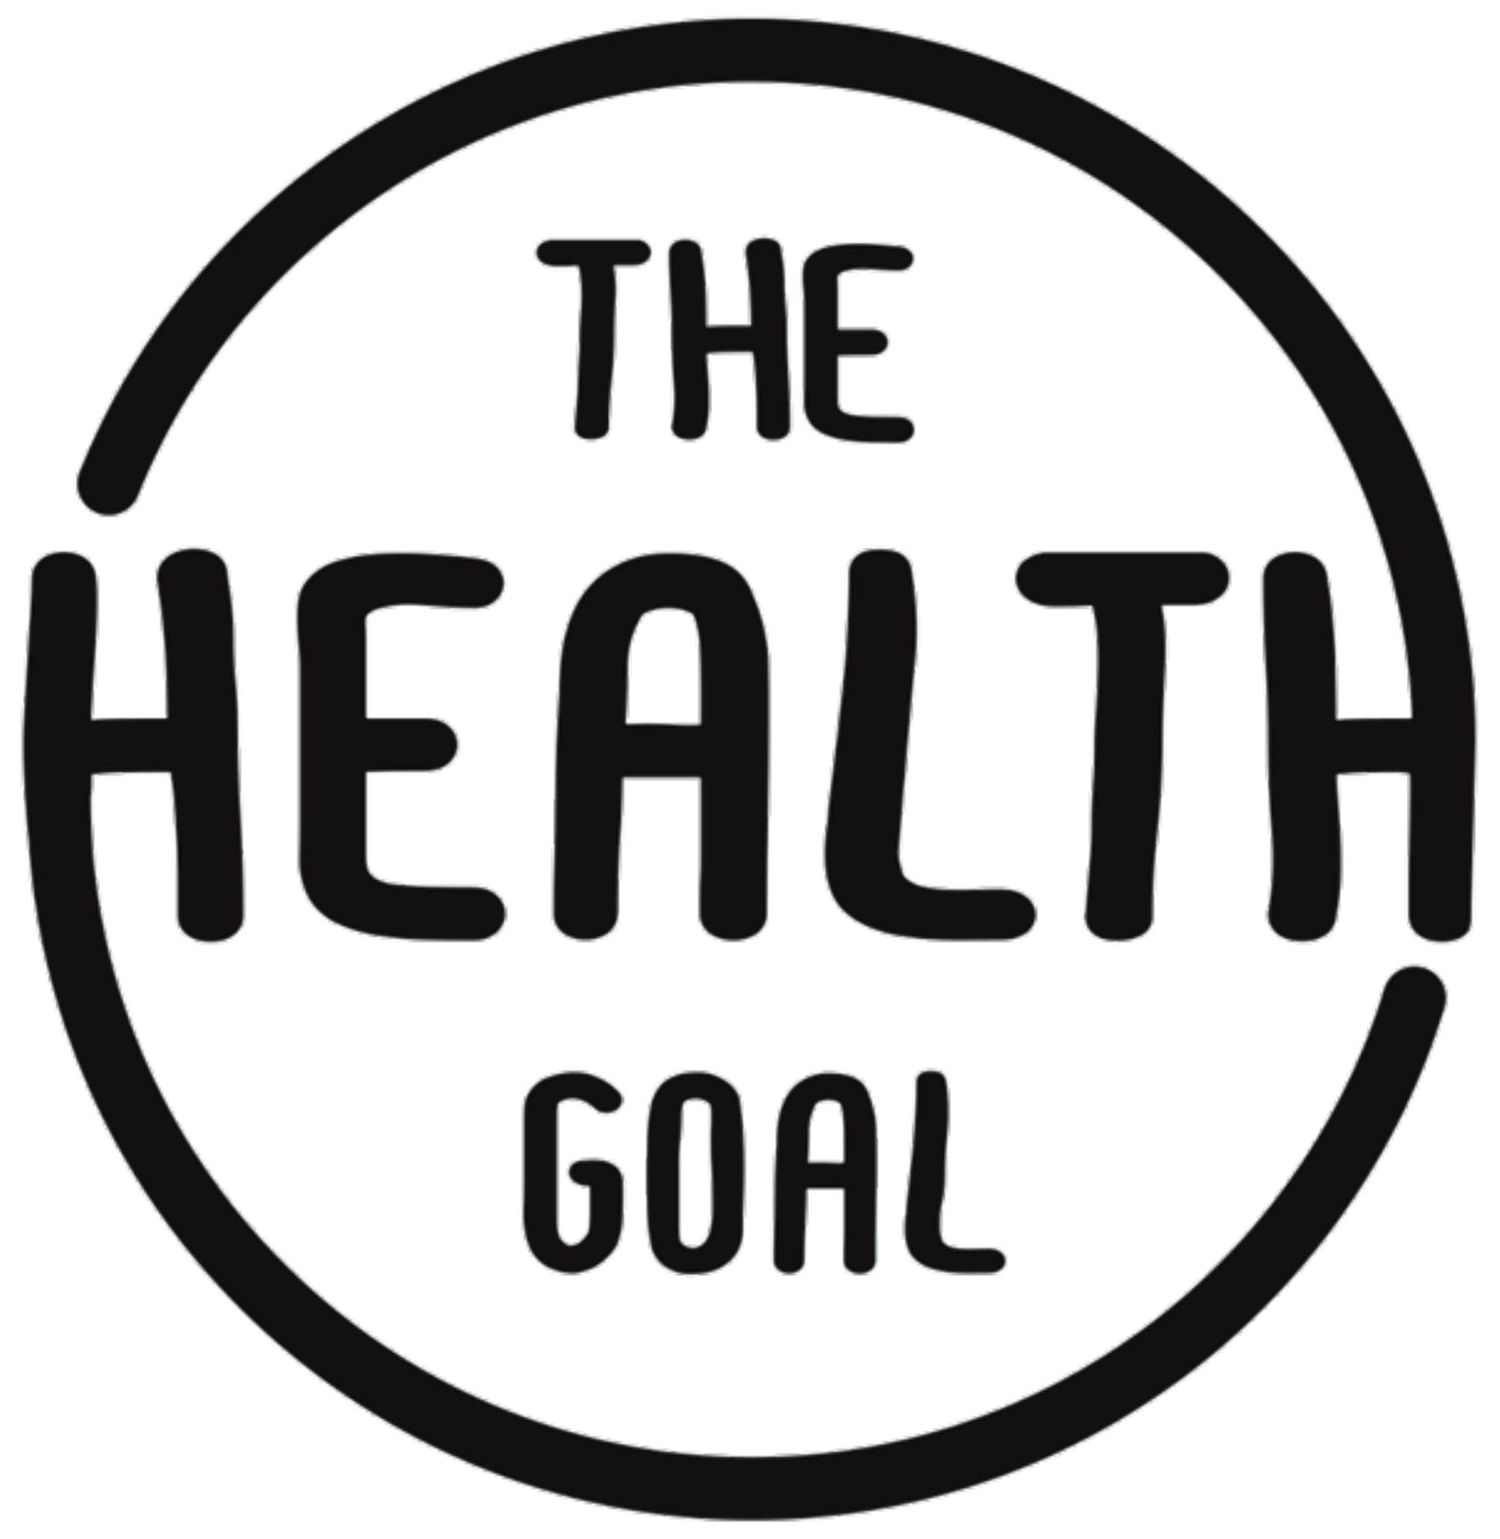 Goals clipart health goal, Goals health goal Transparent